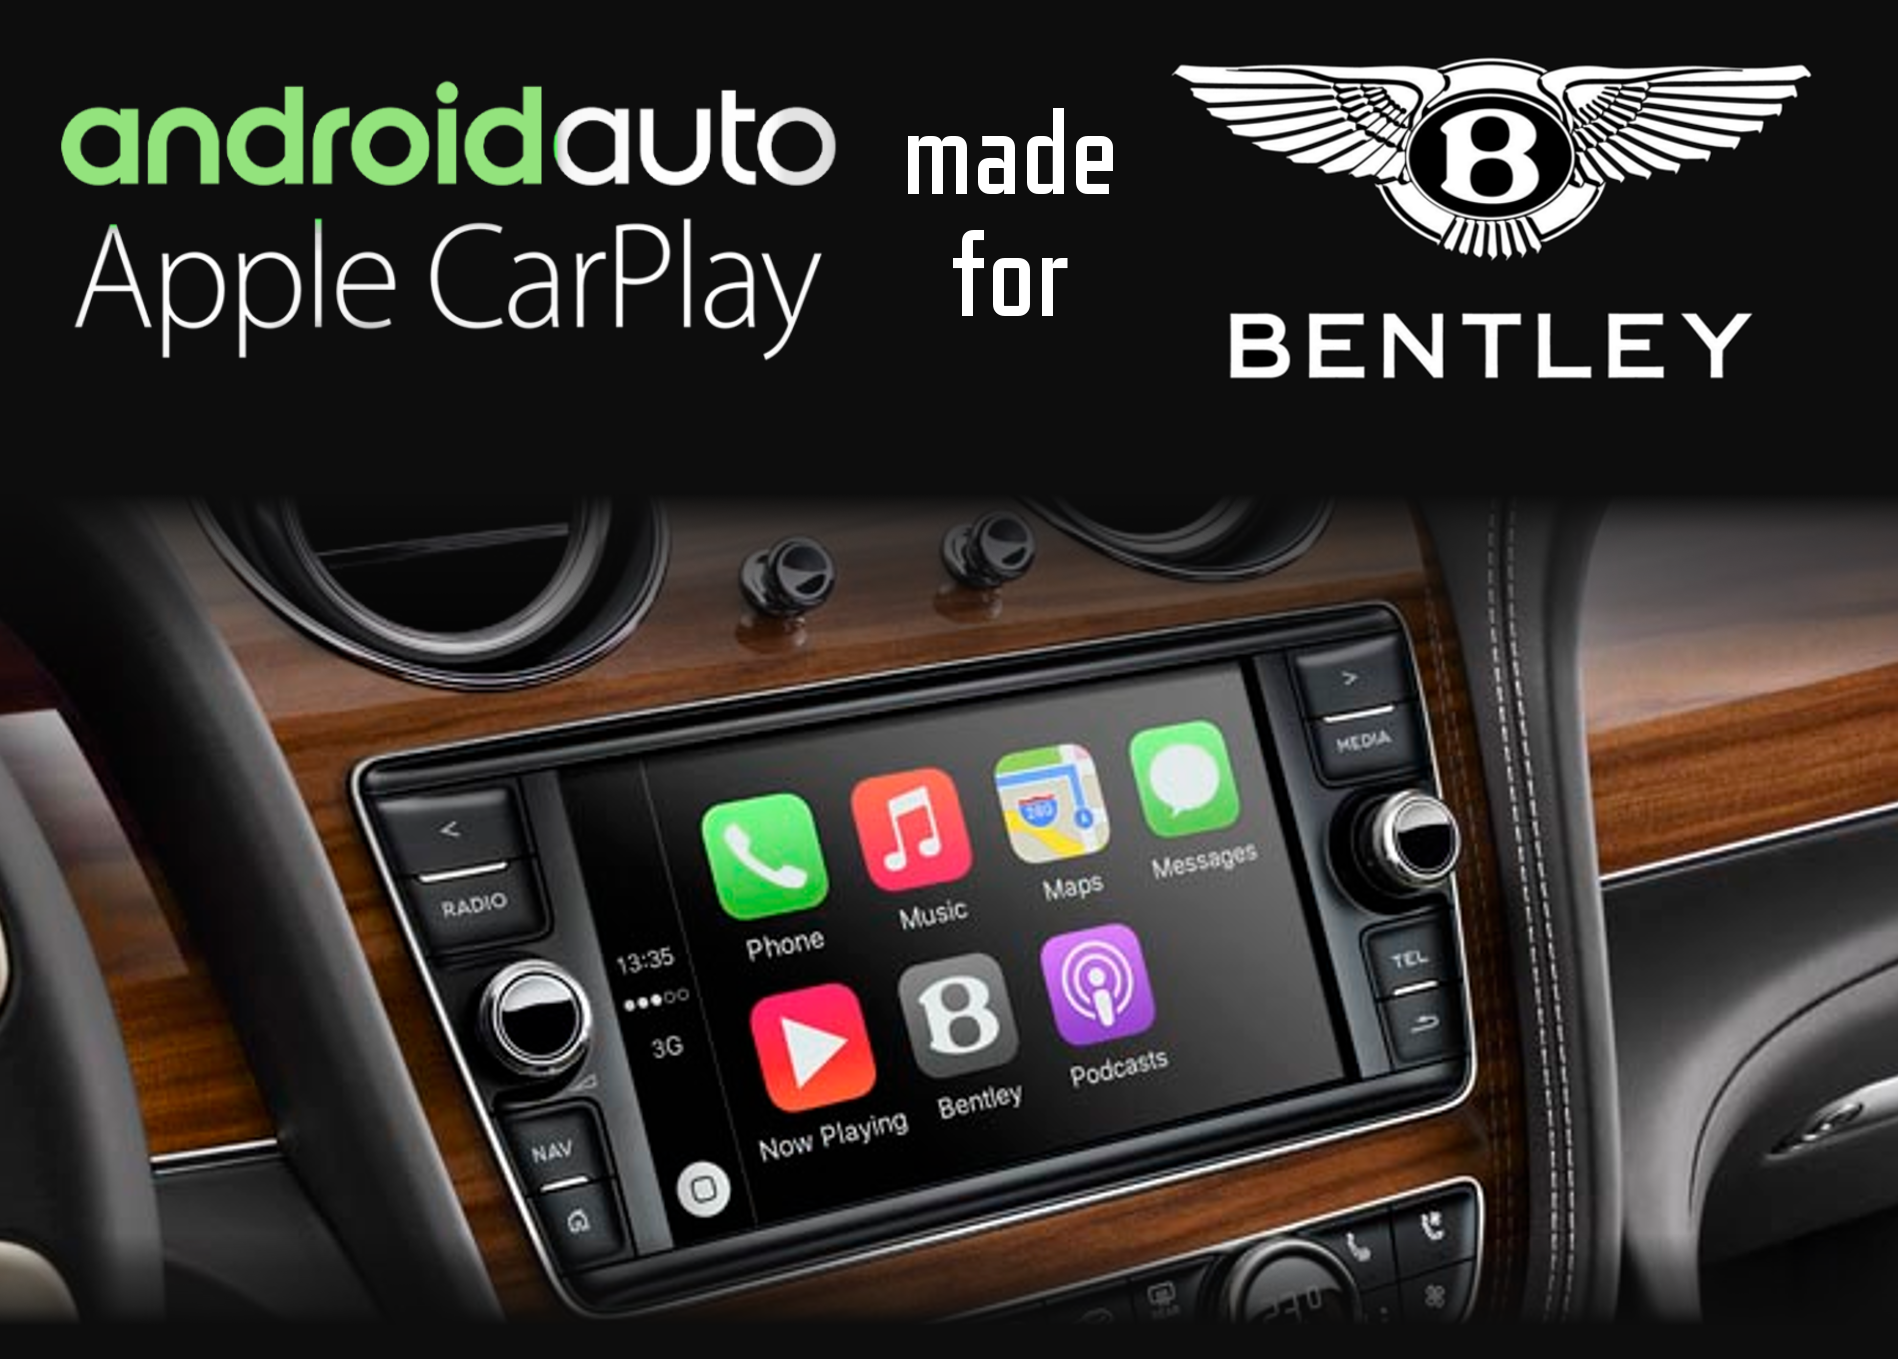 Aftermarket Apple Carplay, Android Auto integration for Bentley factory radio screens for Continental, Flying Spur, GT, VW Phaeton